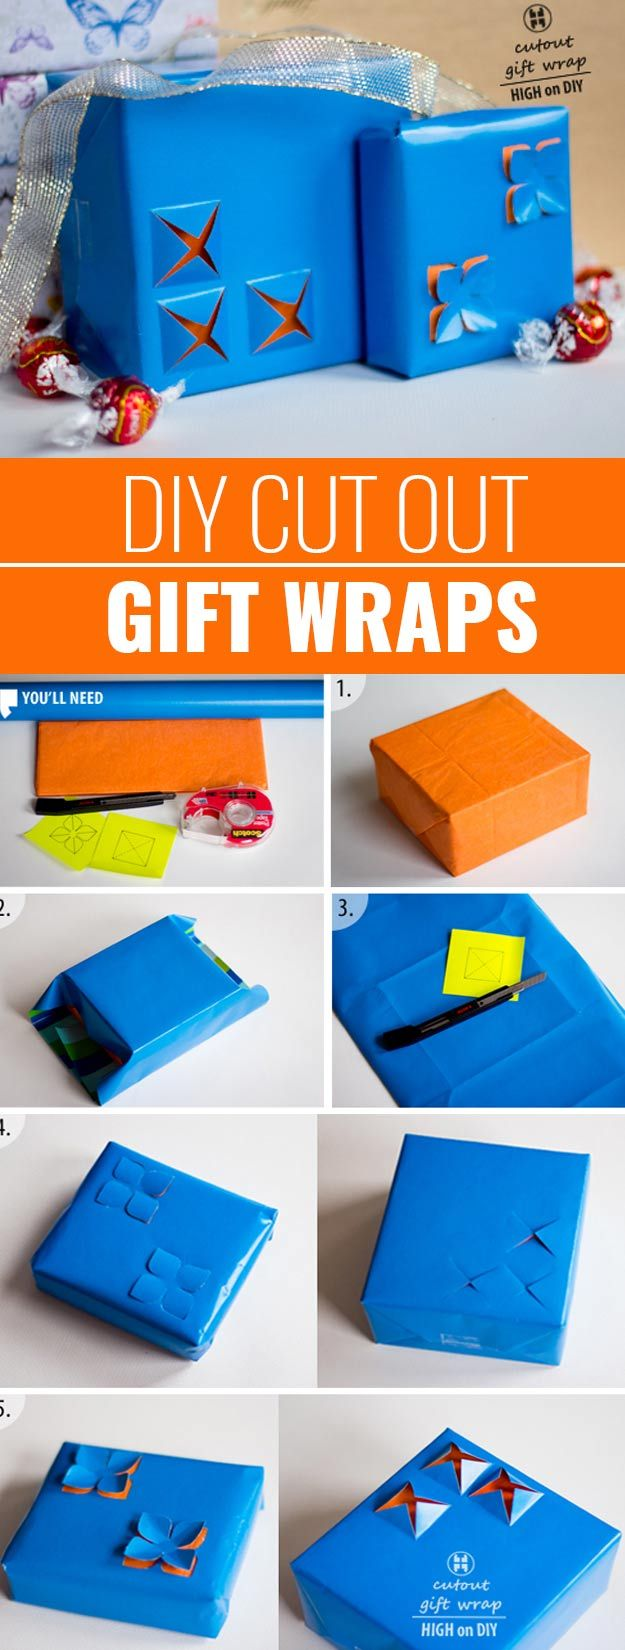 DIY Gift Wrapping Ideas - How To Wrap A Present - Tutorials, Cool Ideas and Instructions | Cute Gift Wrap Ideas for Christmas, Birthdays and Holidays | Tips for Bows and Creative Wrapping Papers |  Cut-Out-Gift-Wraps  |  http://diyjoy.com/how-to-wrap-a-gift-wrapping-ideas